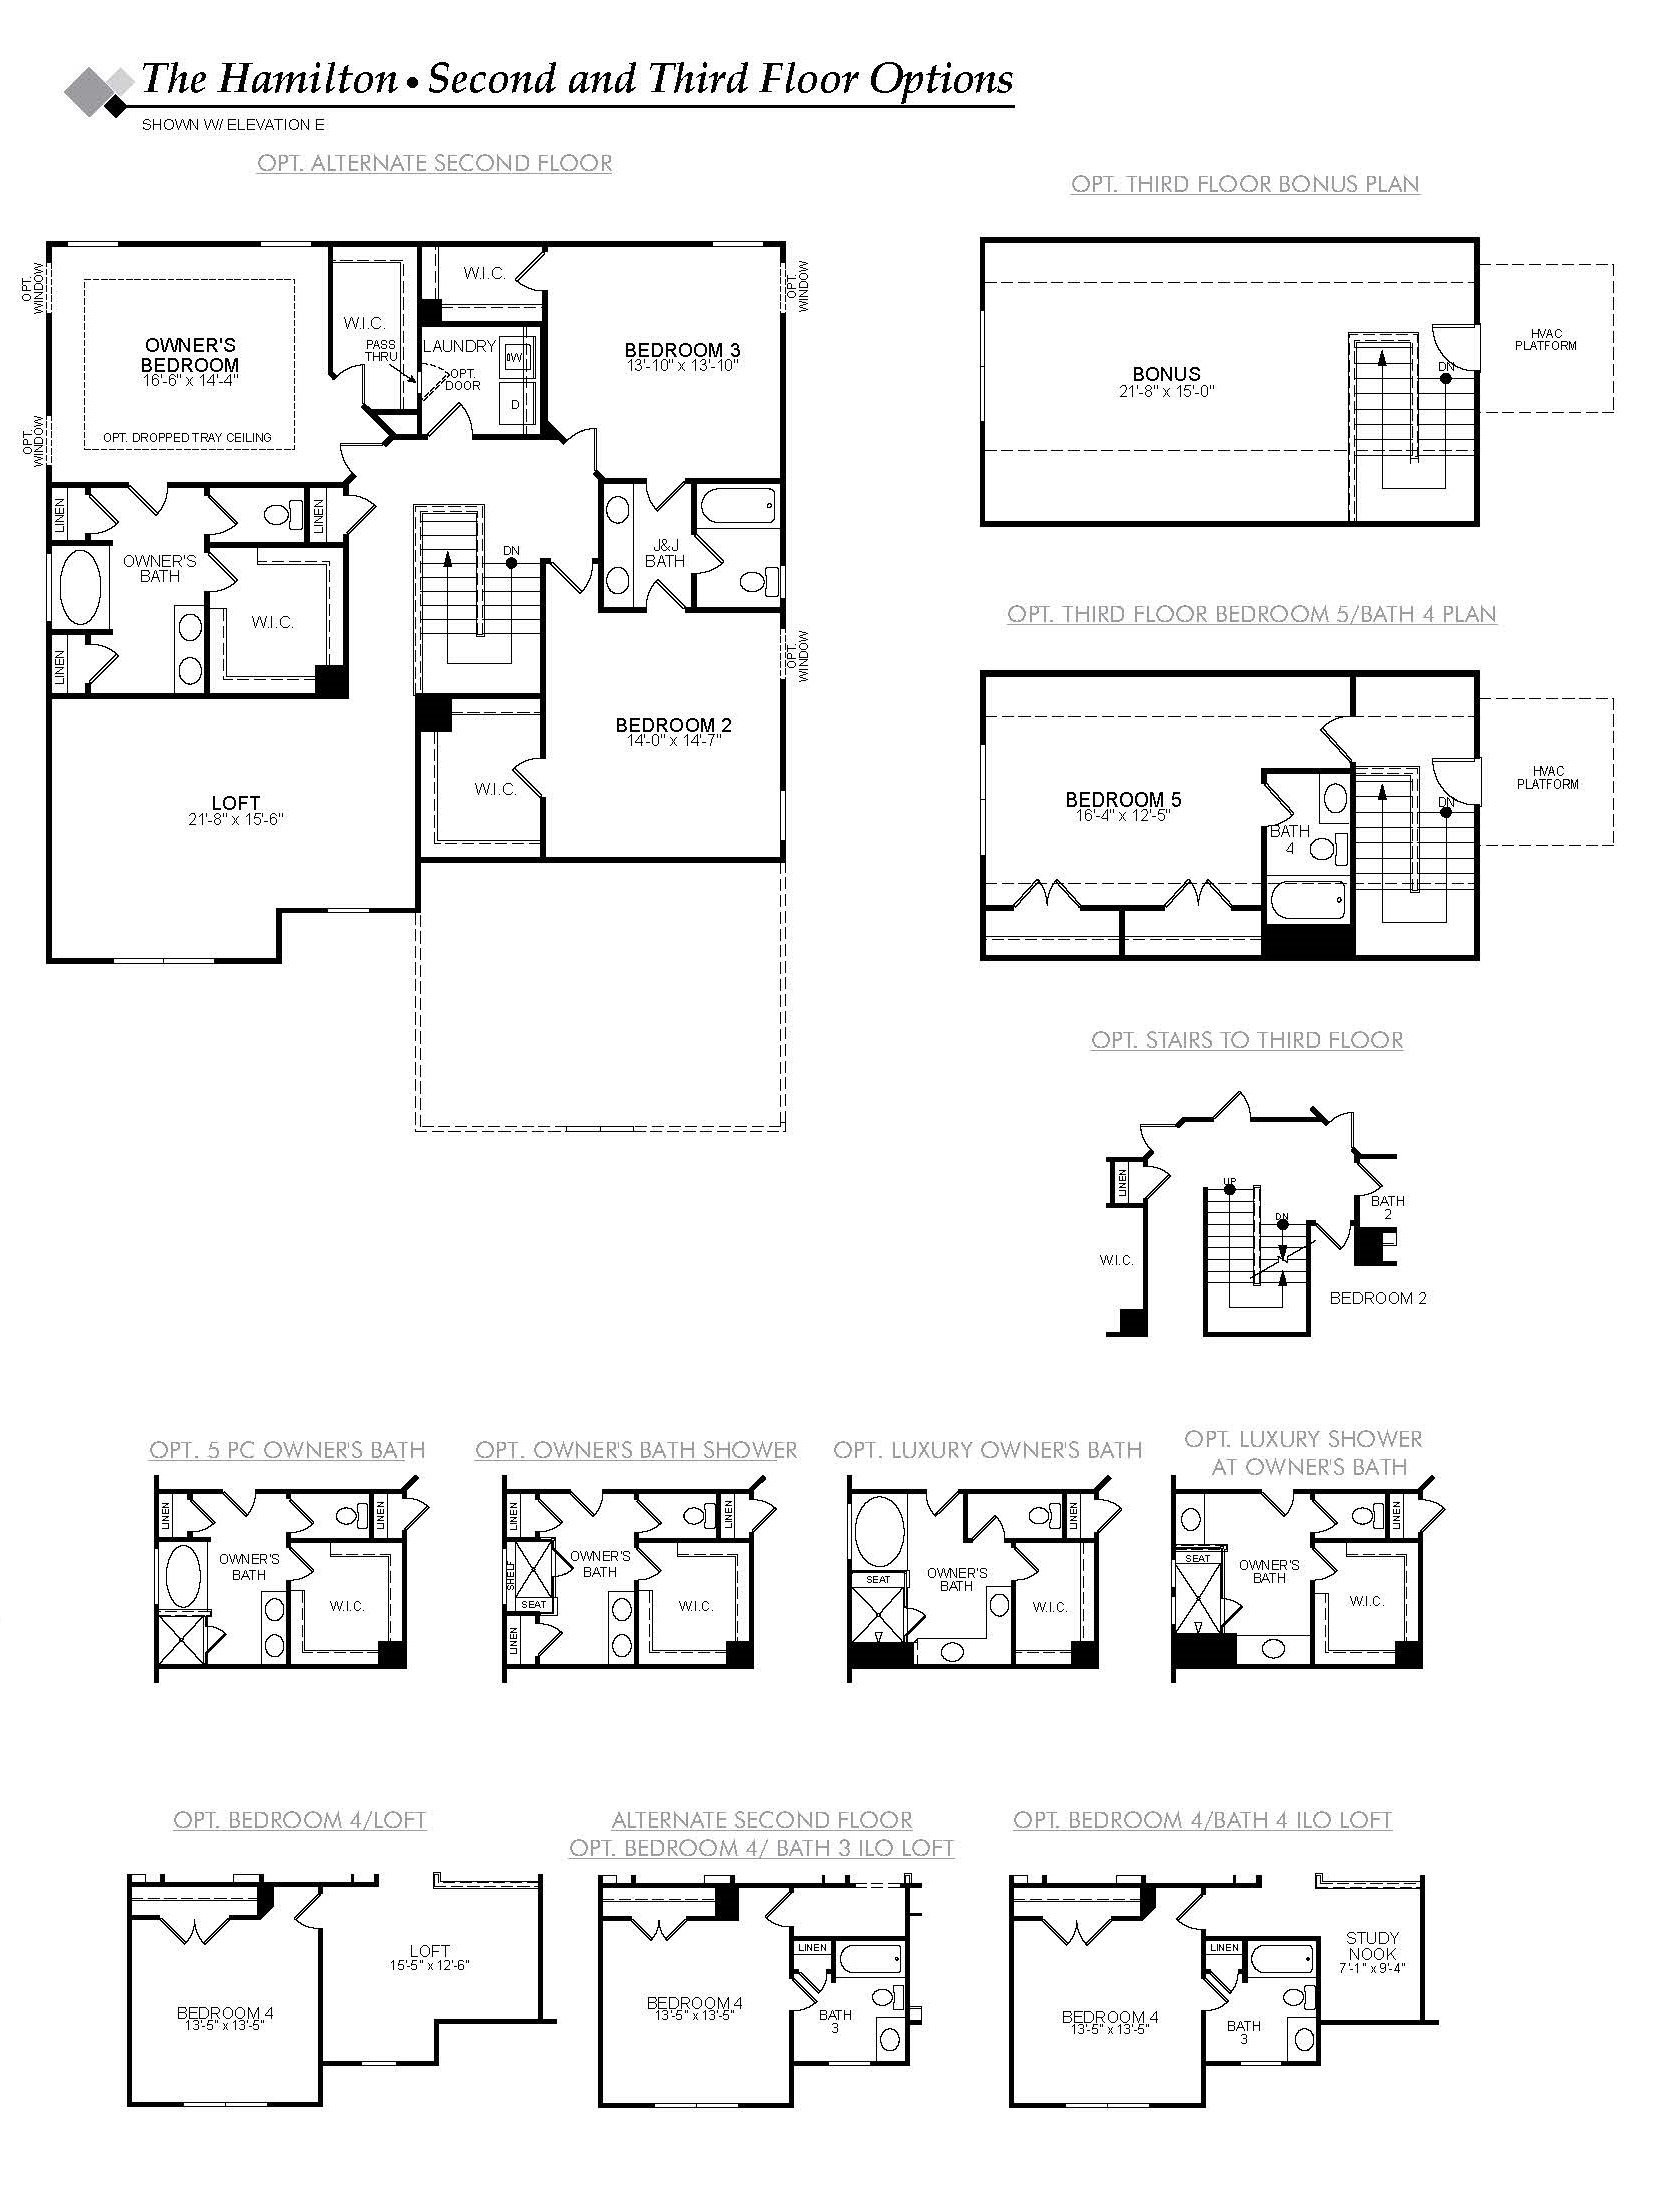 New Home Plans Bradley By Lennar Homes New Homes Guide